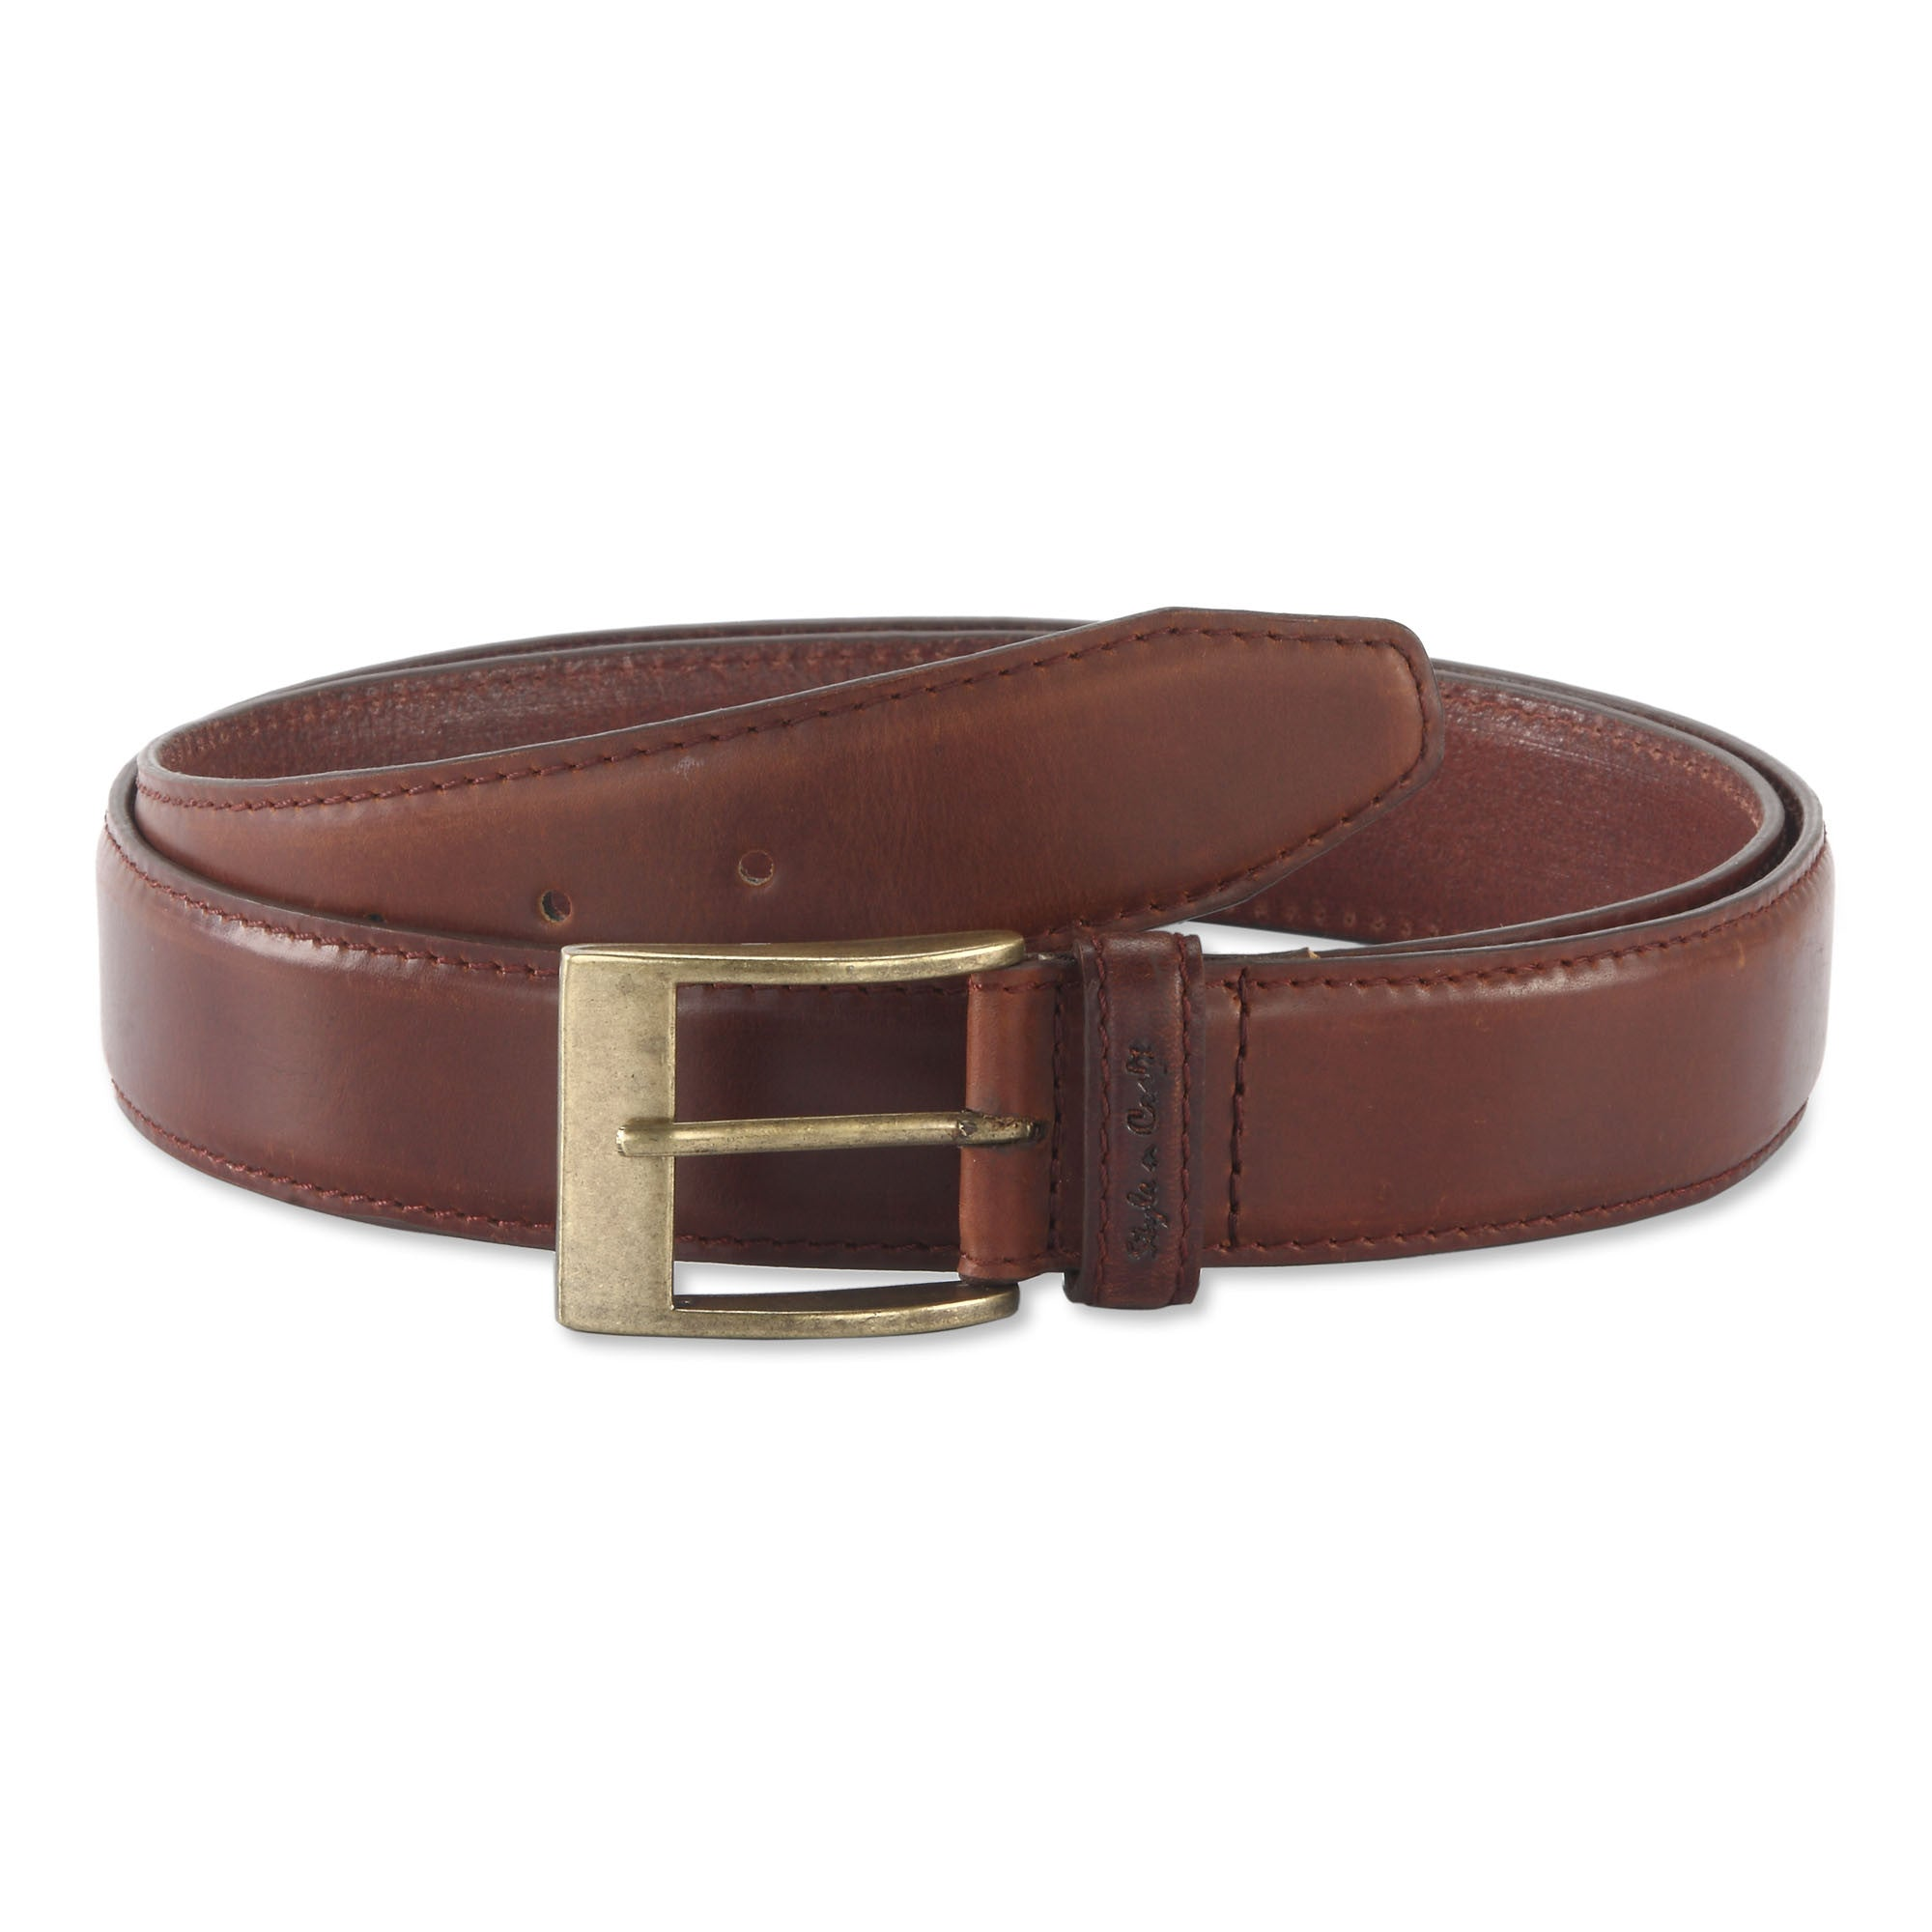 Style N Craft 391903-M One and a Half Inch Leather Belt in Brandy Color at Sears.com